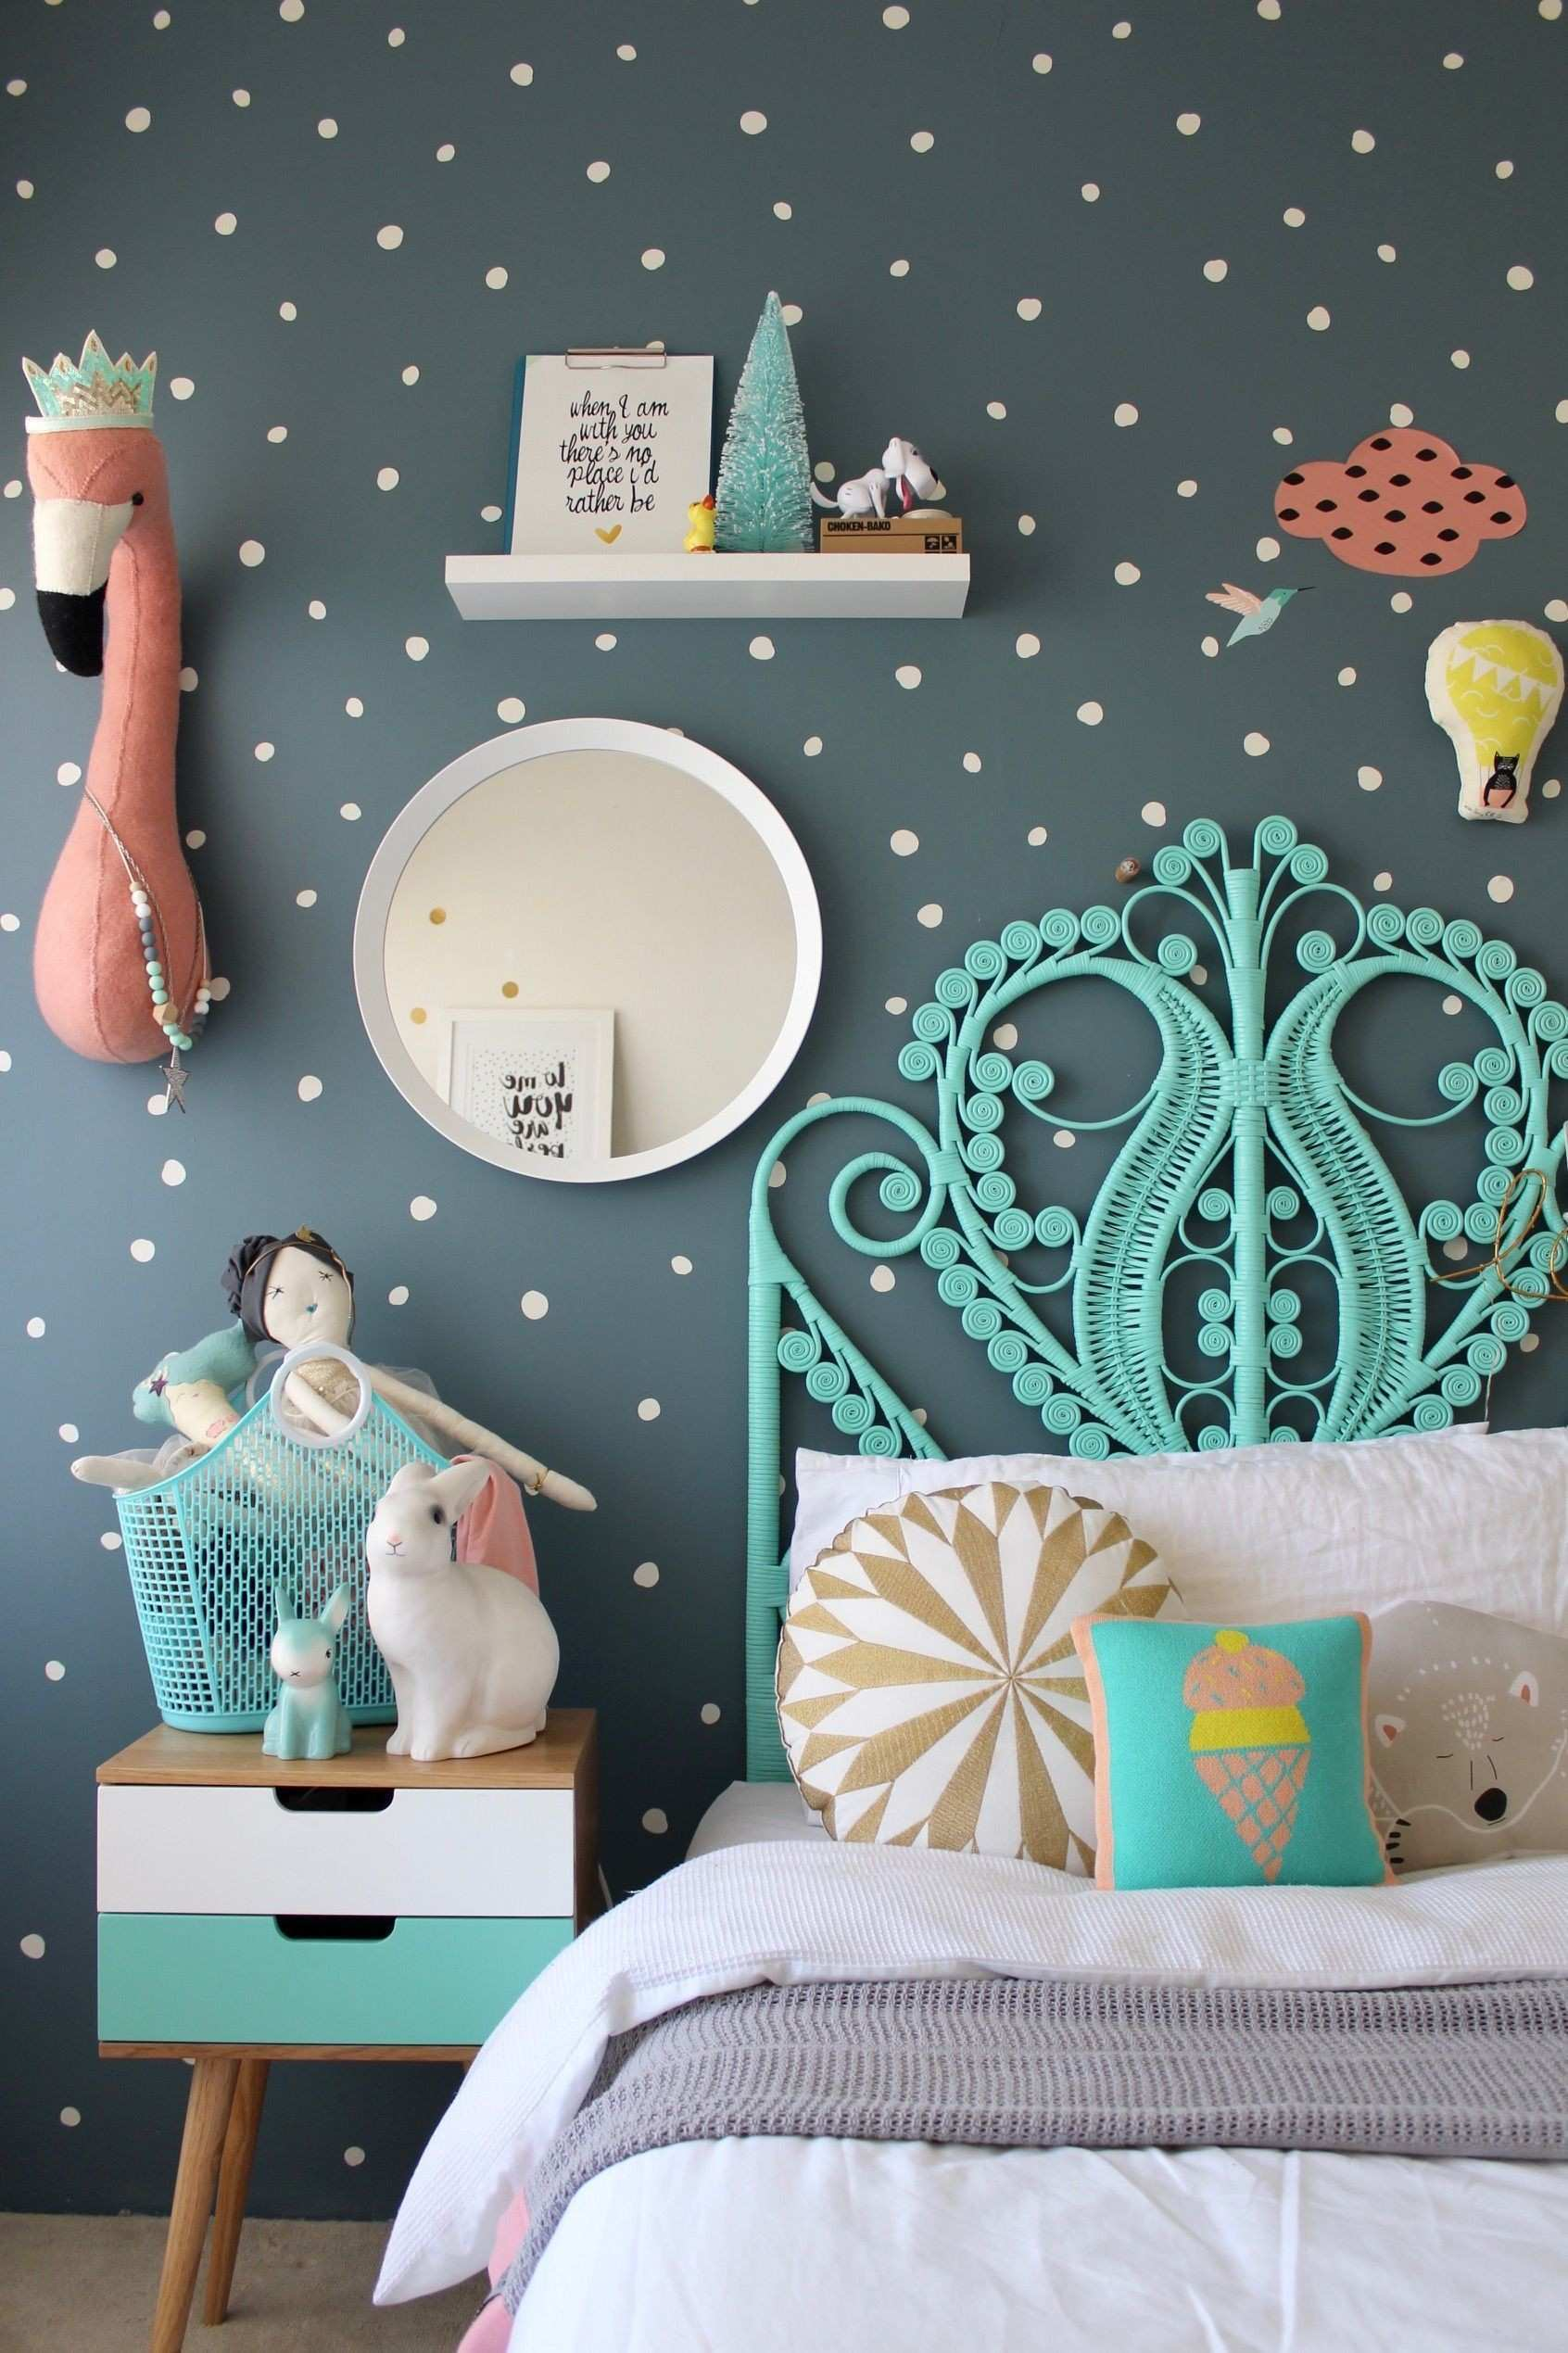 More Fun Childrens Bedroom Ideas for girls on the blog using mimilou